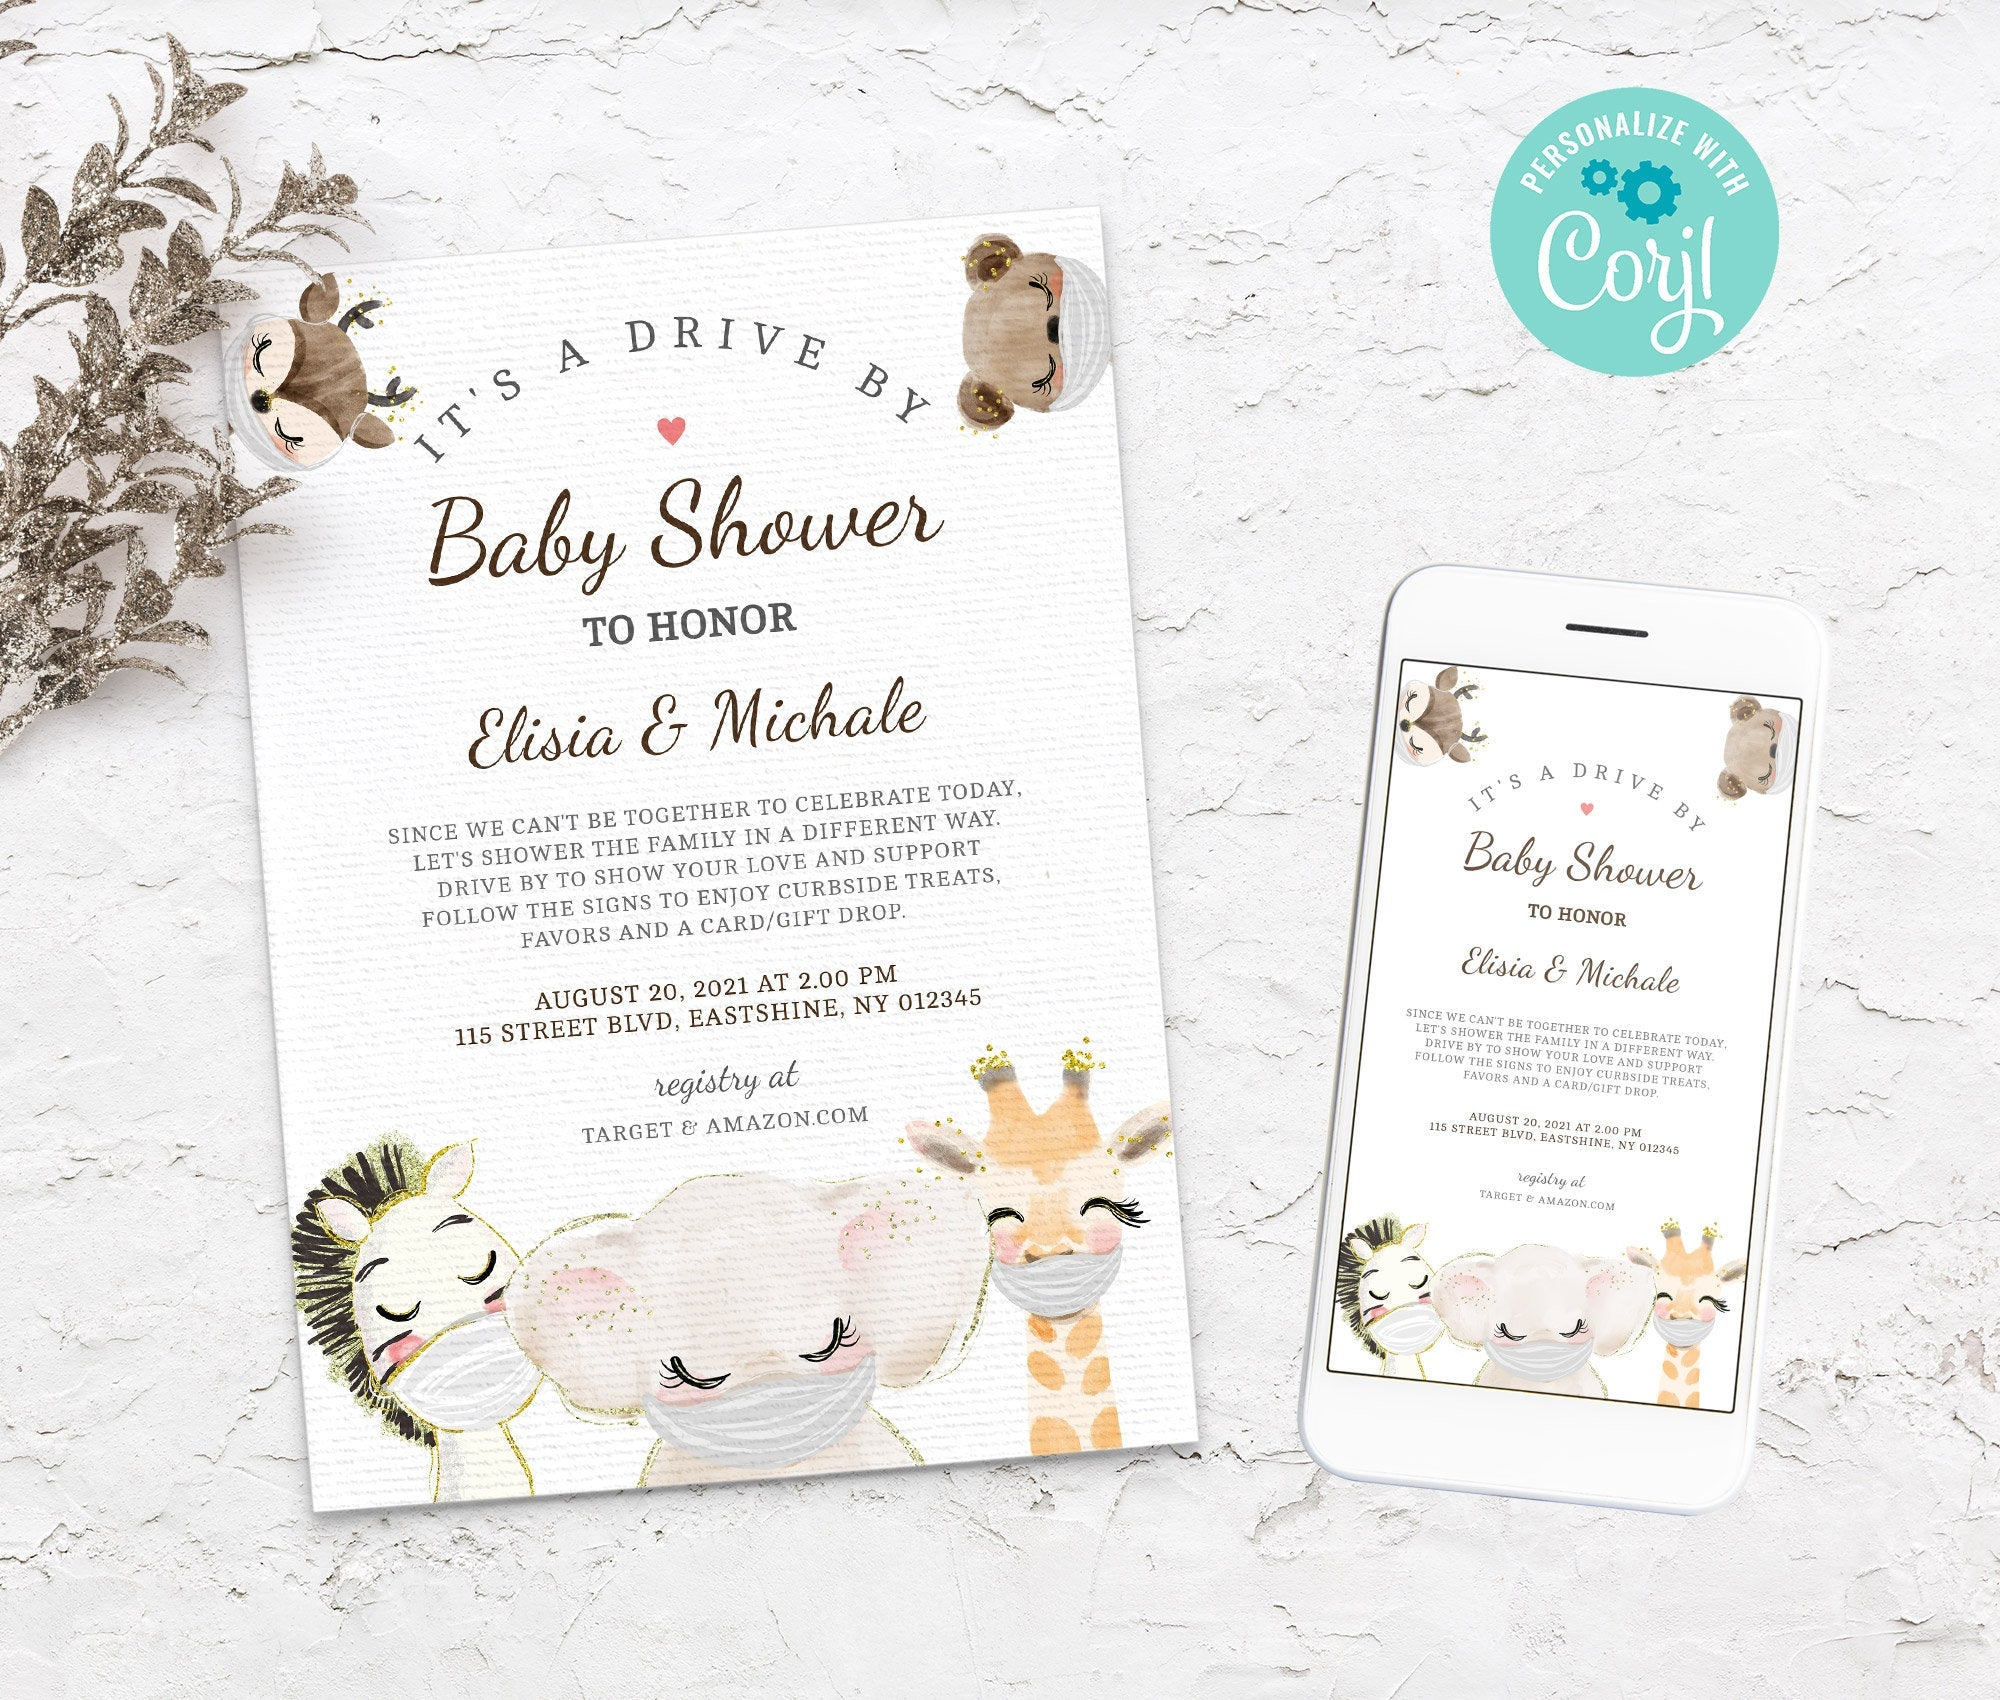 Editable Drive By Baby Shower Invitation - Animals Drive Through Baby Shower Invitation - Social Distancing Baby Shower - Instant BS3601